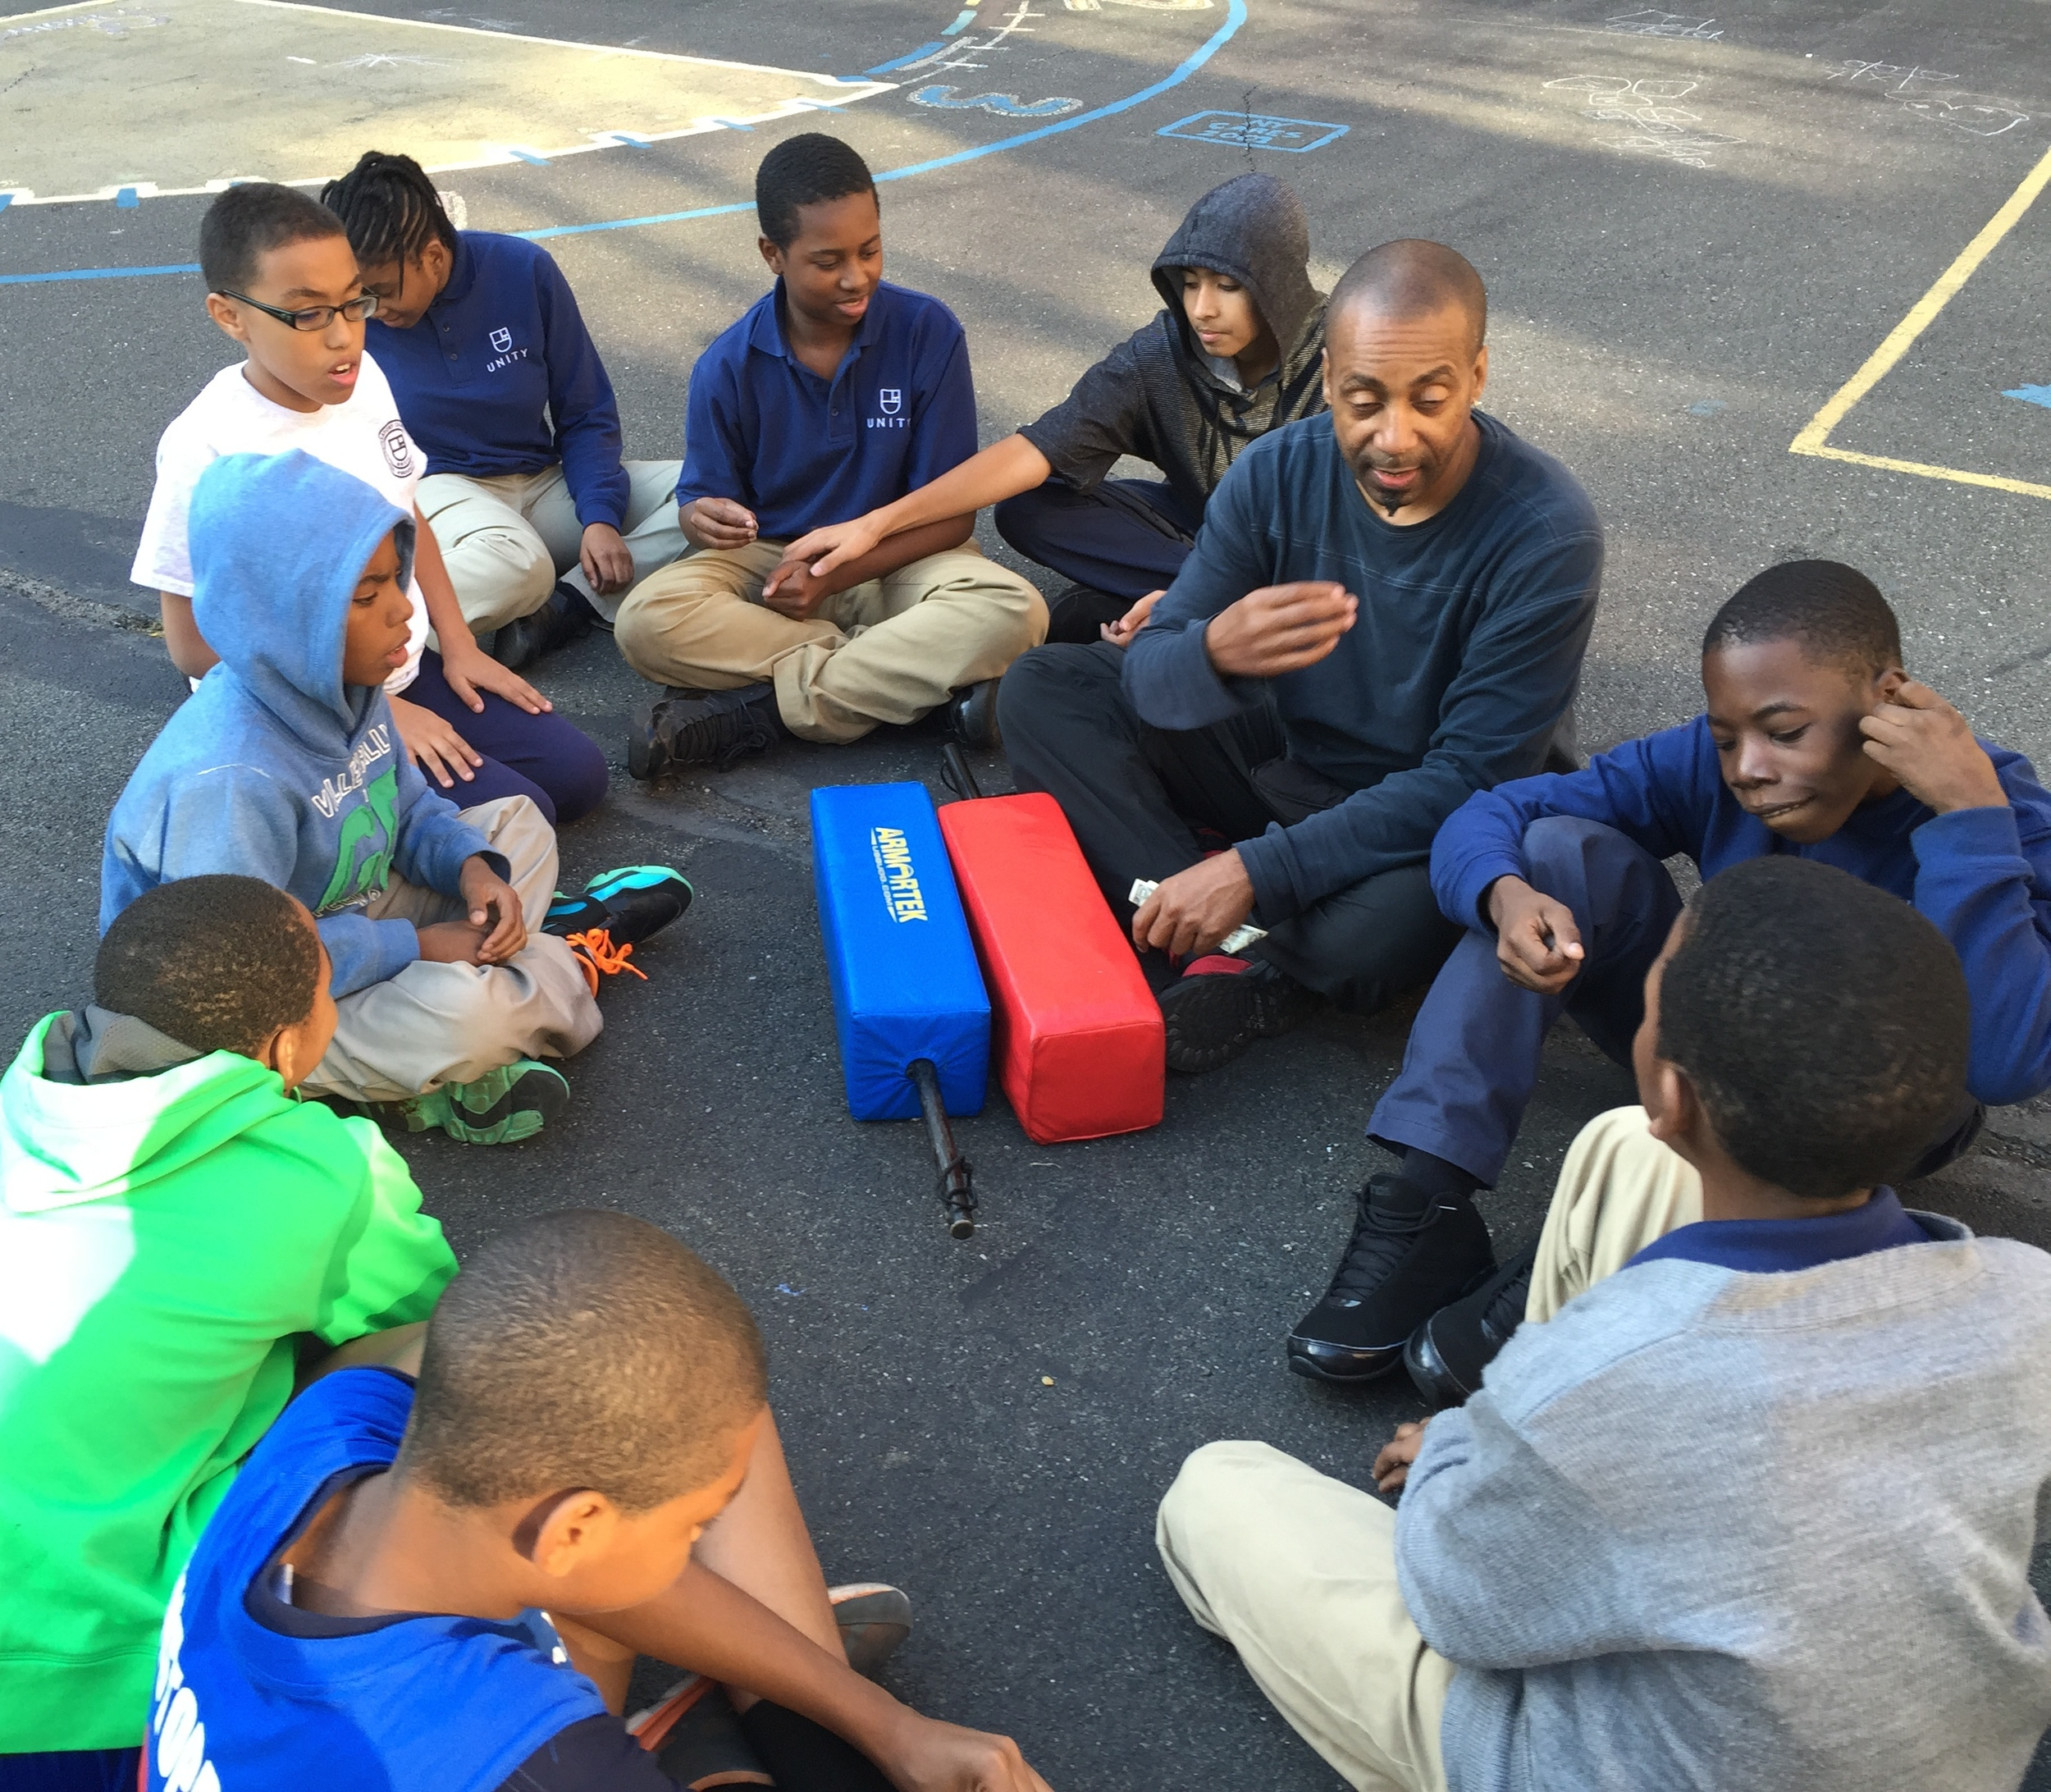 Unity Preparatory charter school - students of the martial arts club discuss and practice breathing techniques.